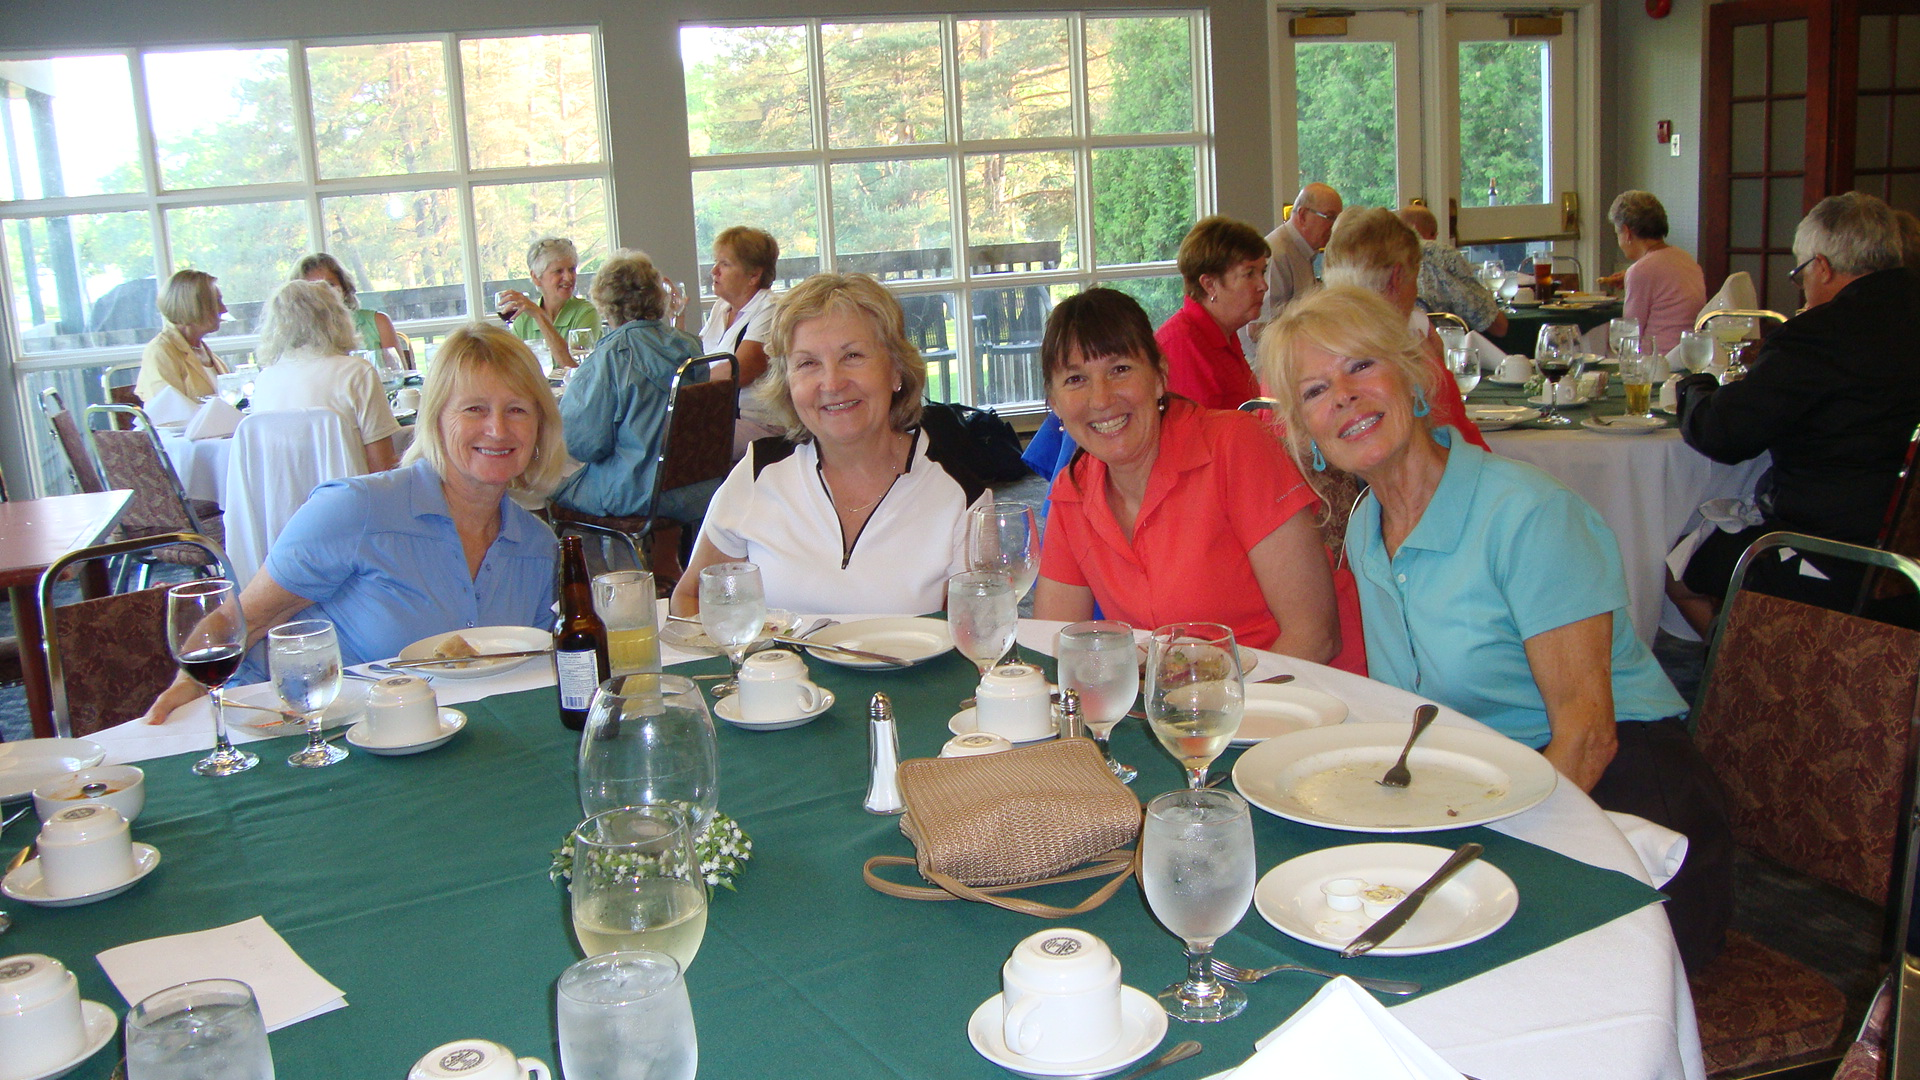 Foursome on the dining table 1